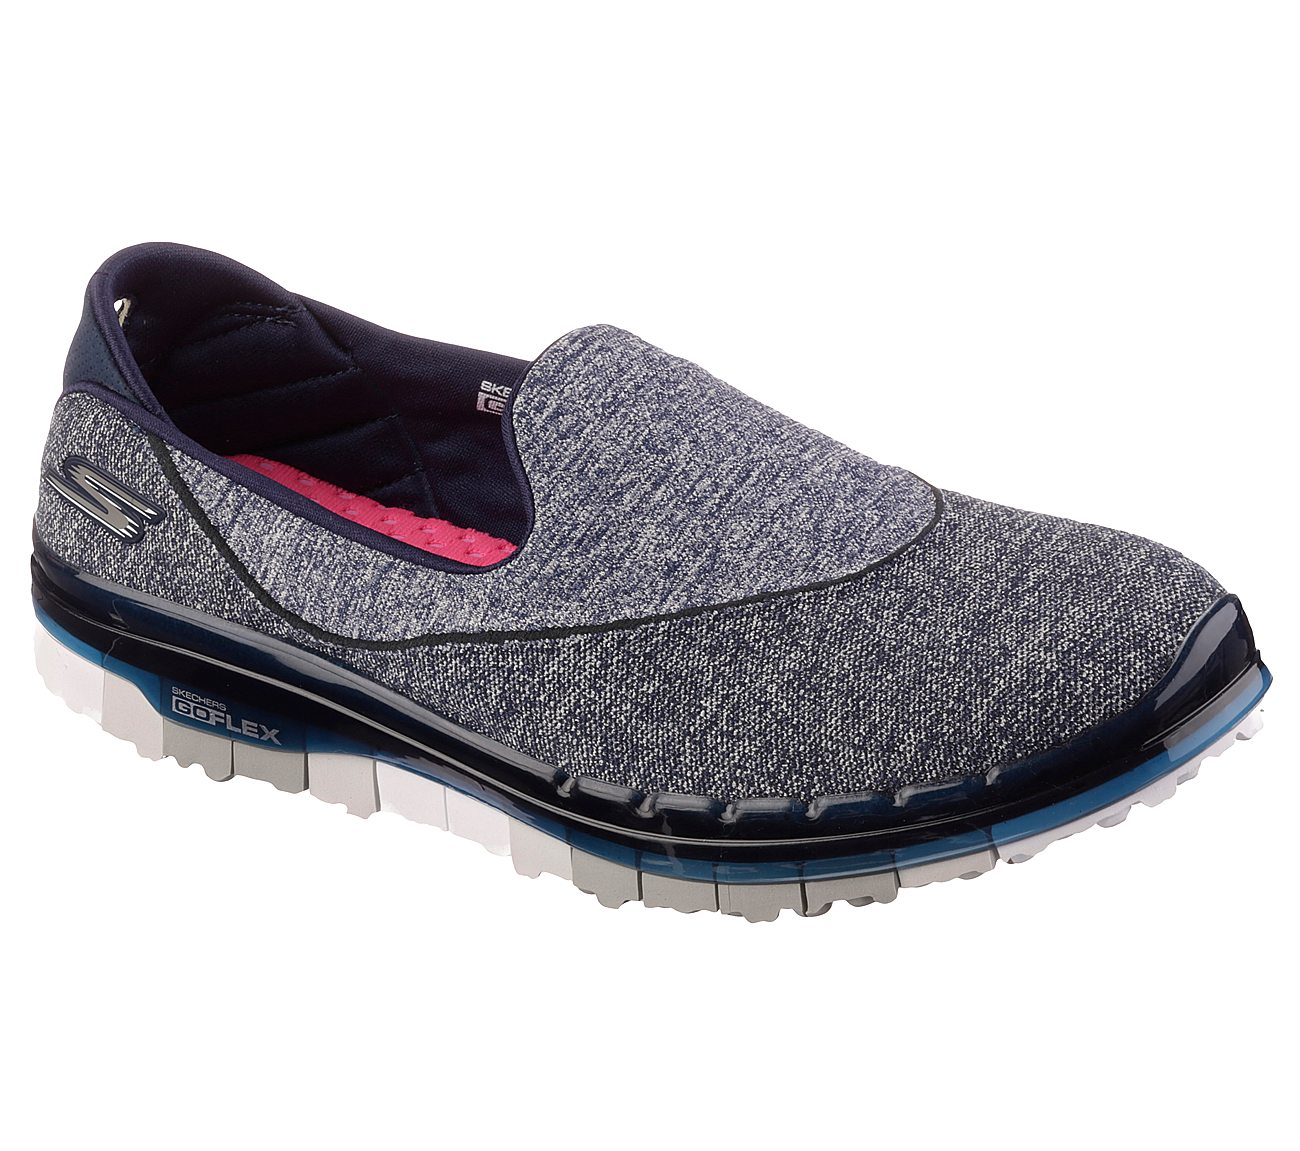 Image for SKECHERS Women's GO Flex Walk Shoes from Shoe